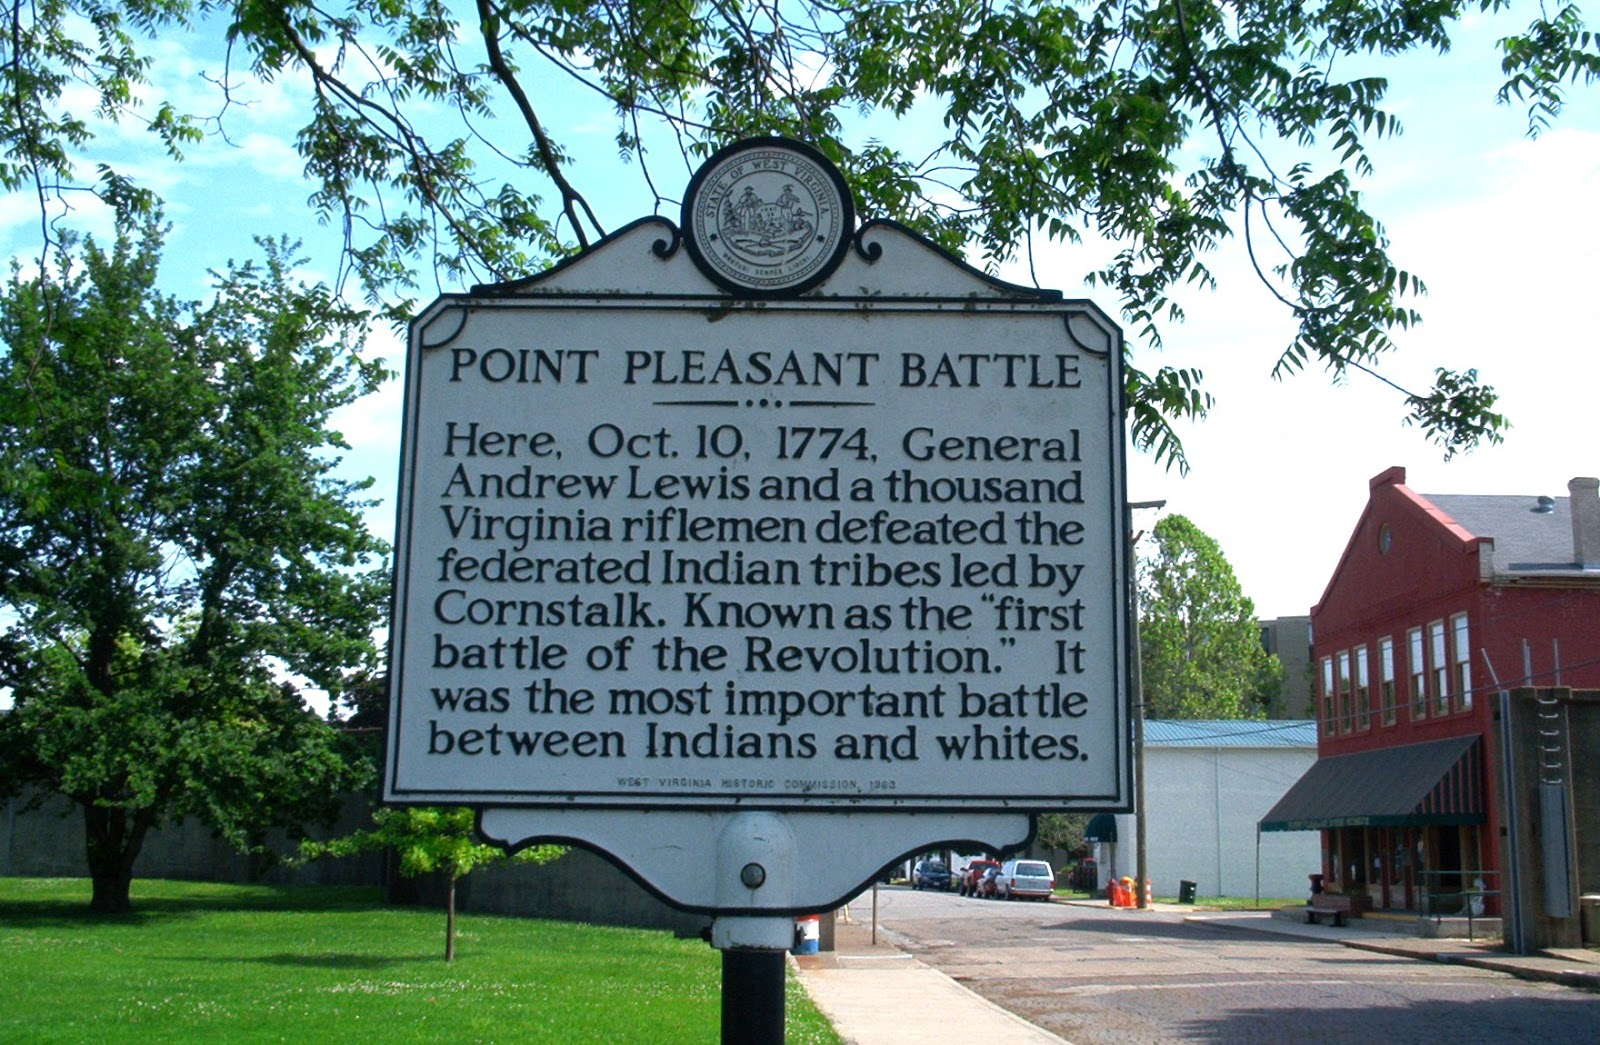 Point Pleasant Battle